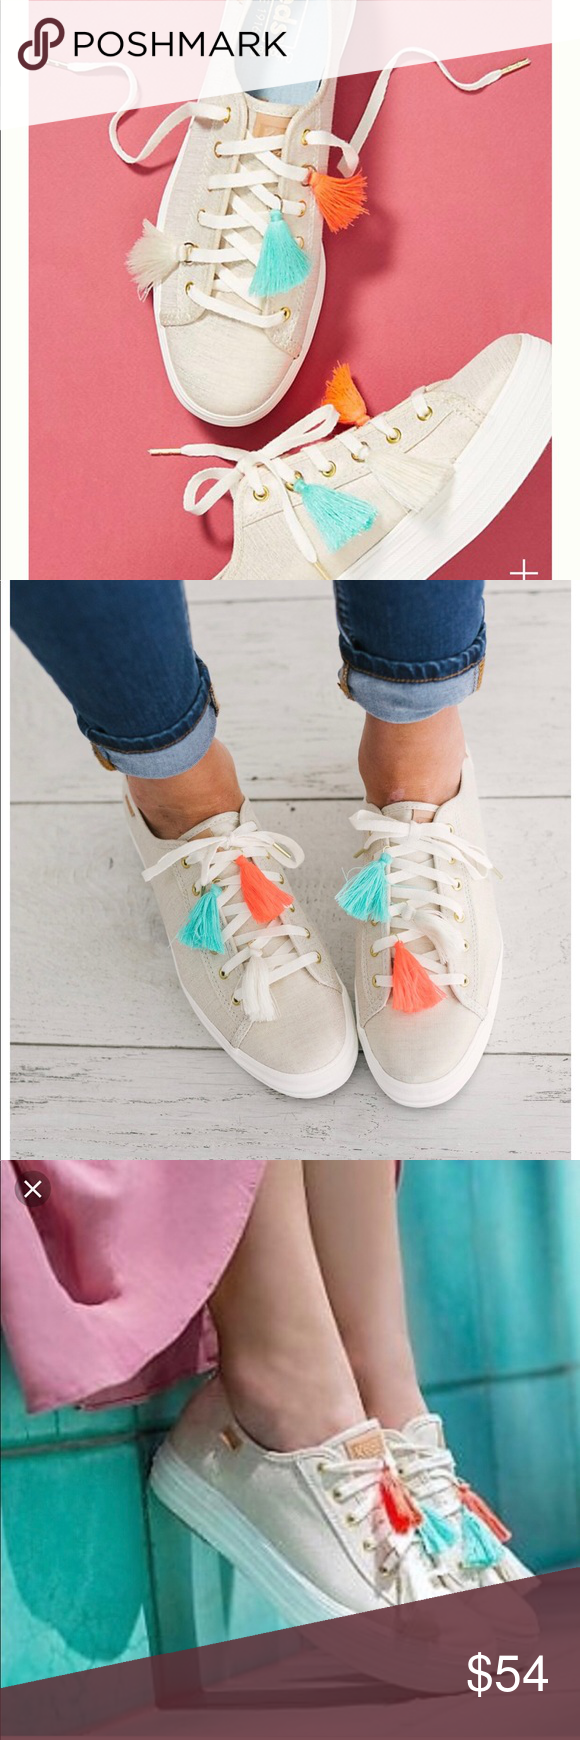 1906c1499120 Anthropologie Keds triple kick tassel sneakers Keds  mission hasn t changed  since their inaugural